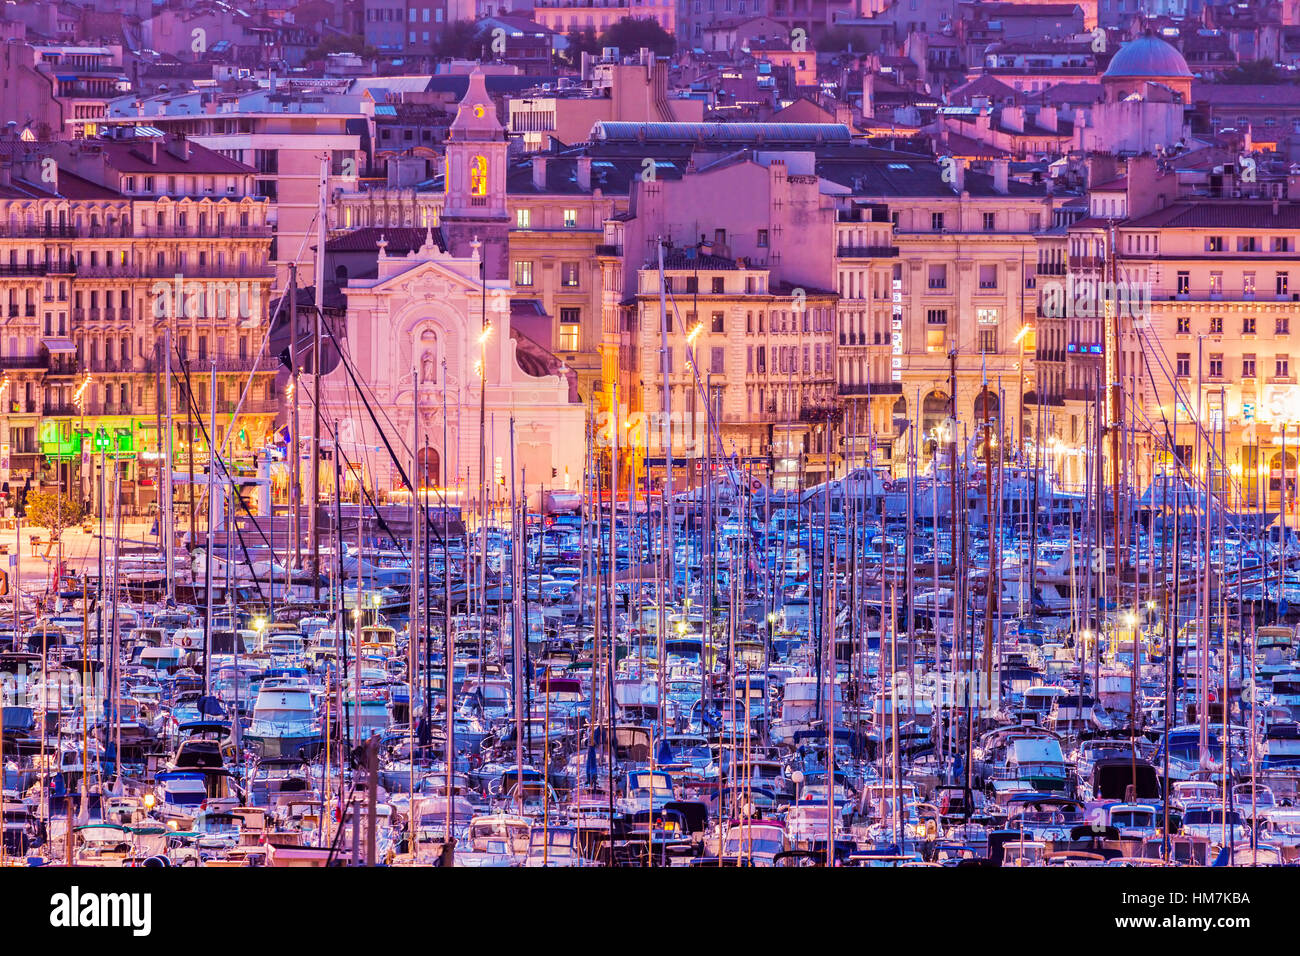 France, Provence-Alpes-Cote d'Azur, Marseille, Cityscape with Vieux port - Old Port at sunset - Stock Image